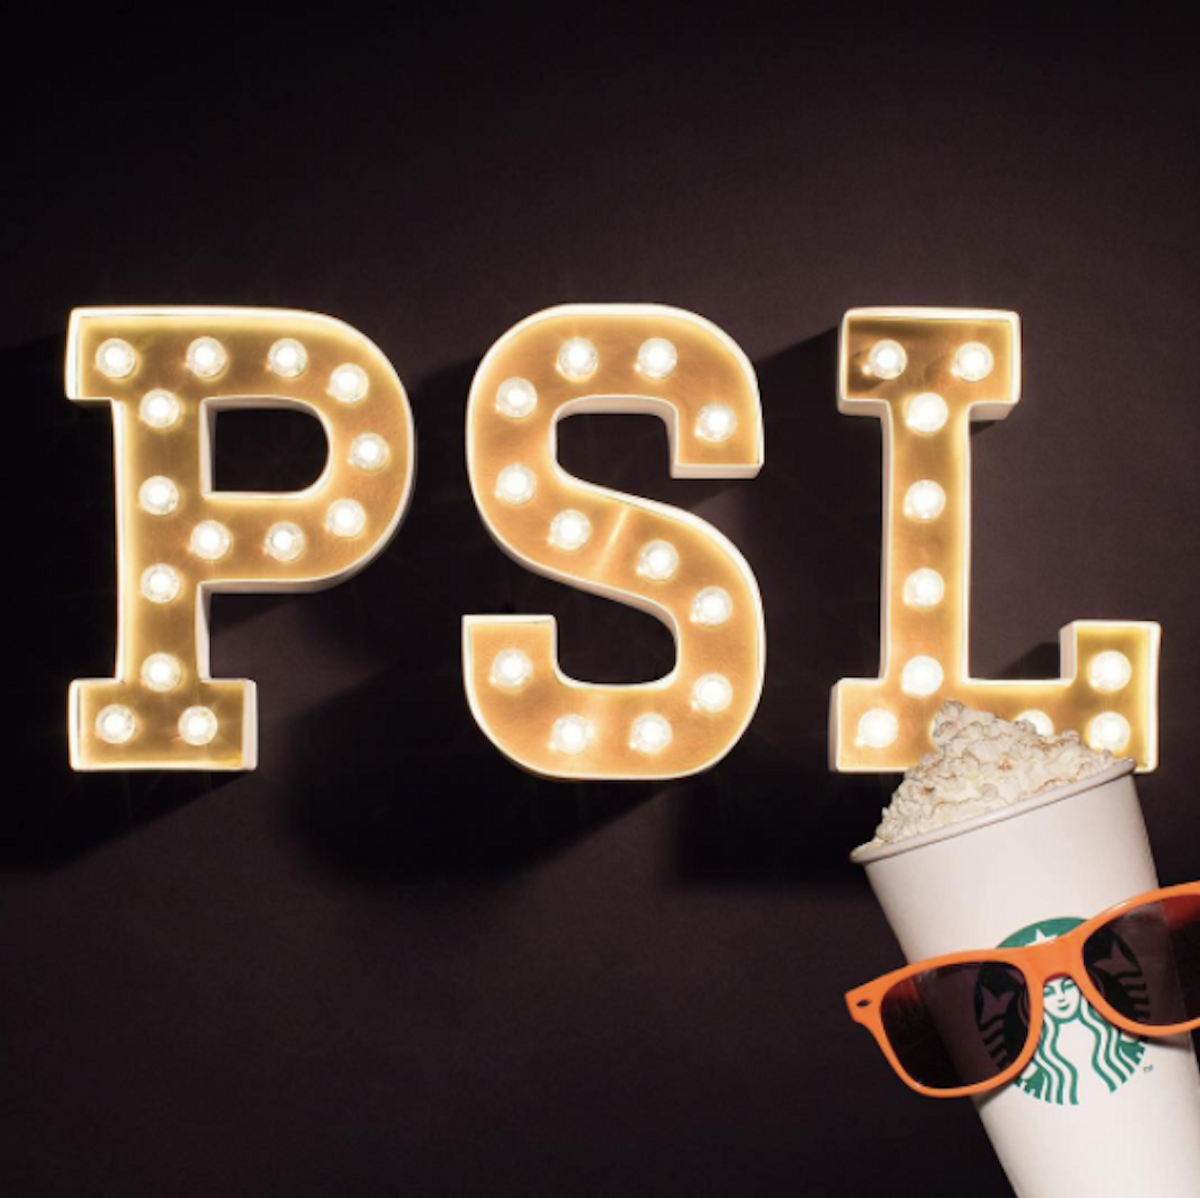 5 Ways Starbucks Successfully Markets The PSL